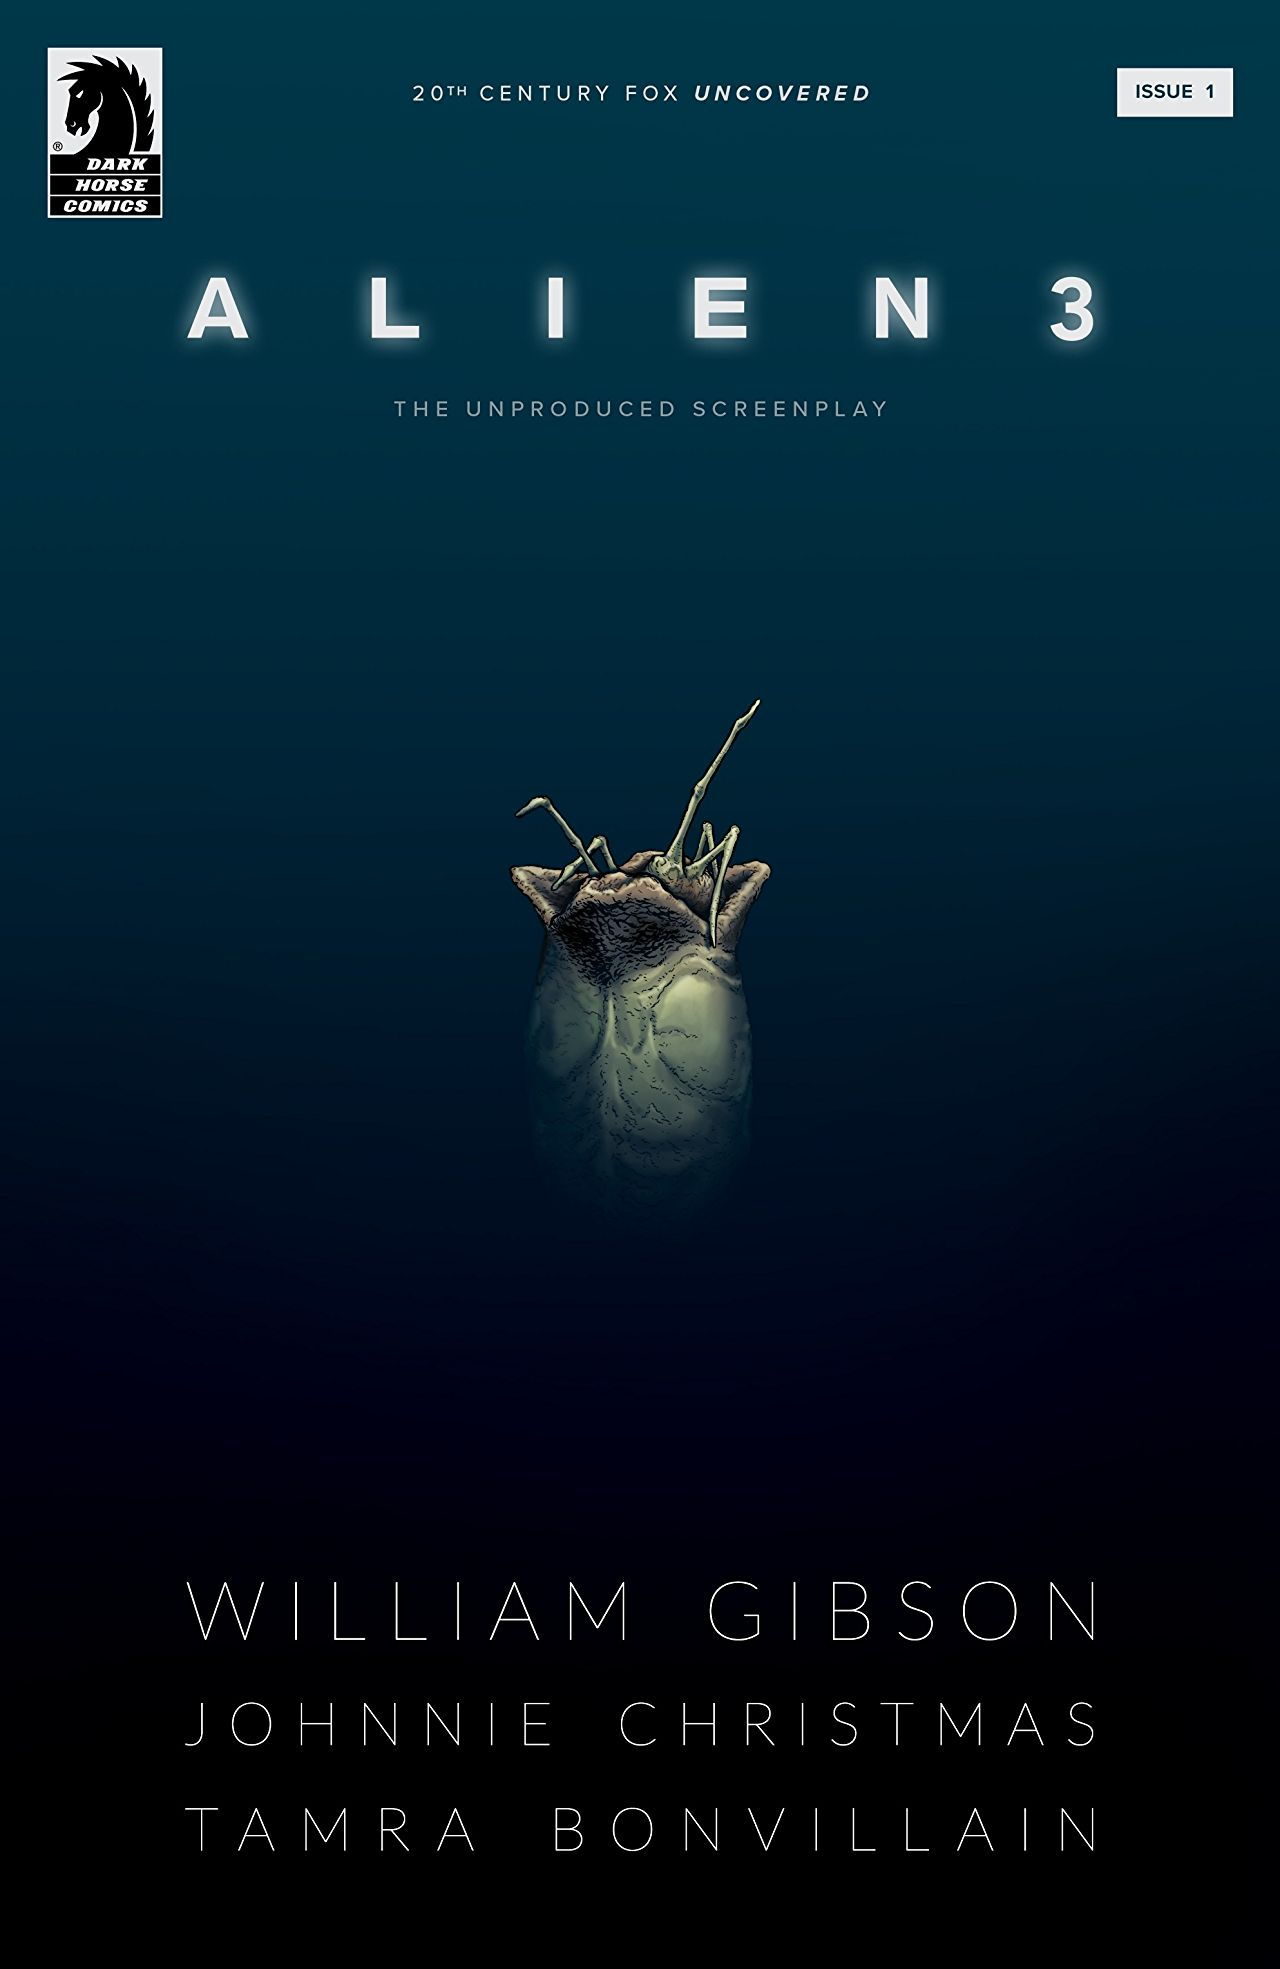 William Gibson's Alien 3 #1 Advance Review